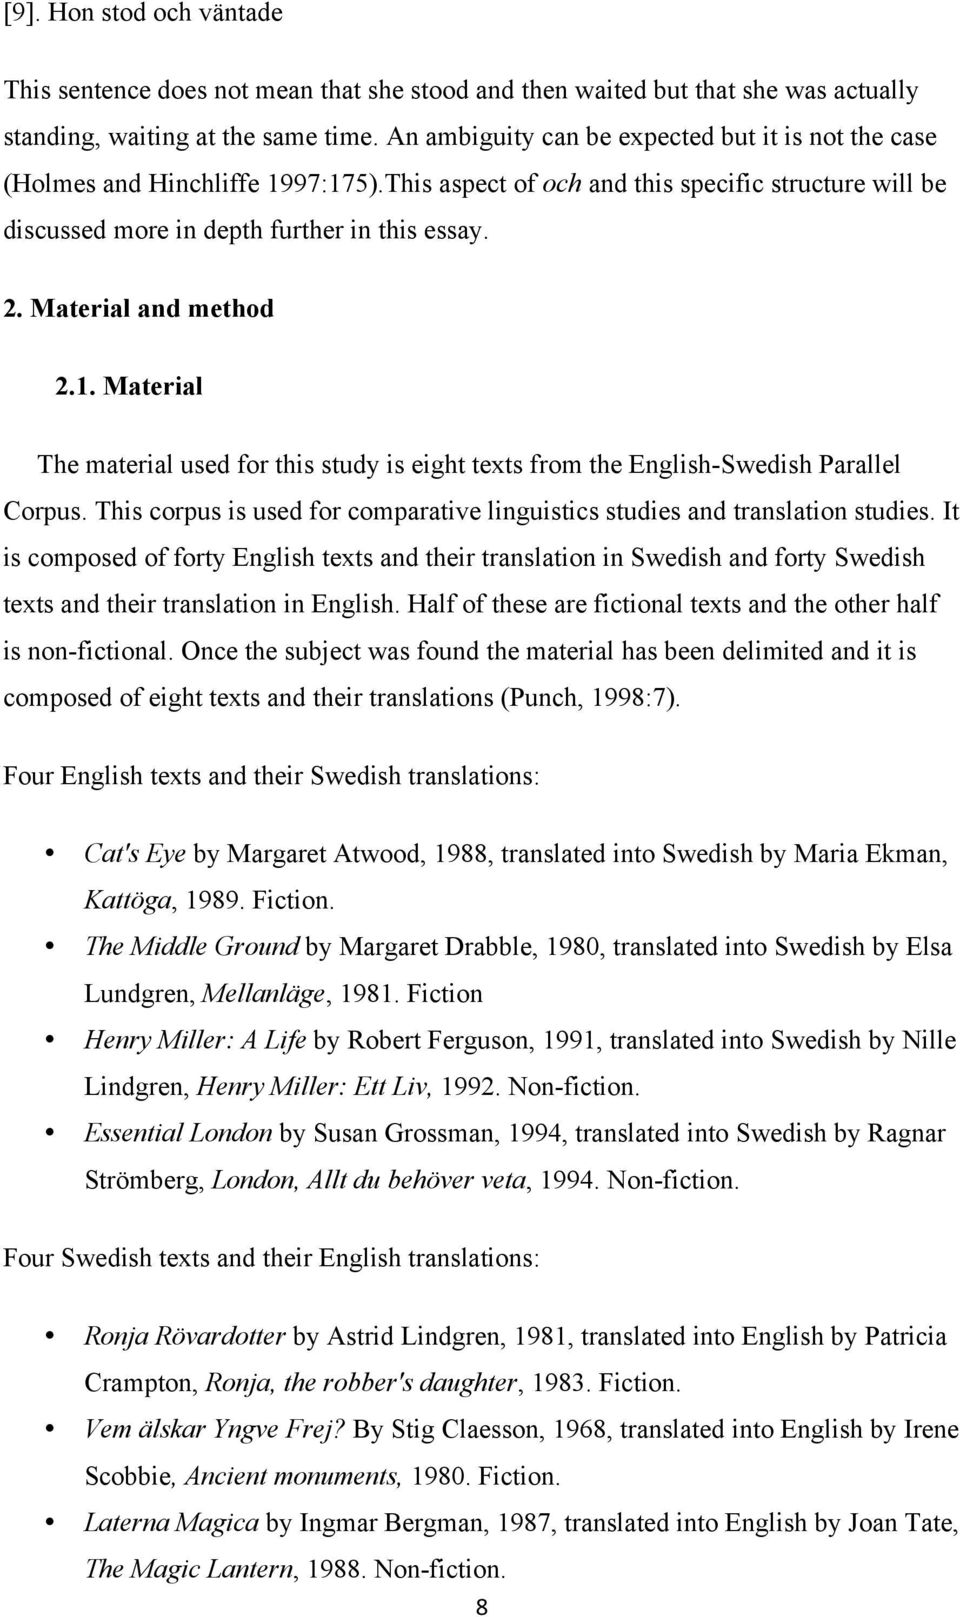 Material and method 2.1. Material The material used for this study is eight texts from the English-Swedish Parallel Corpus.